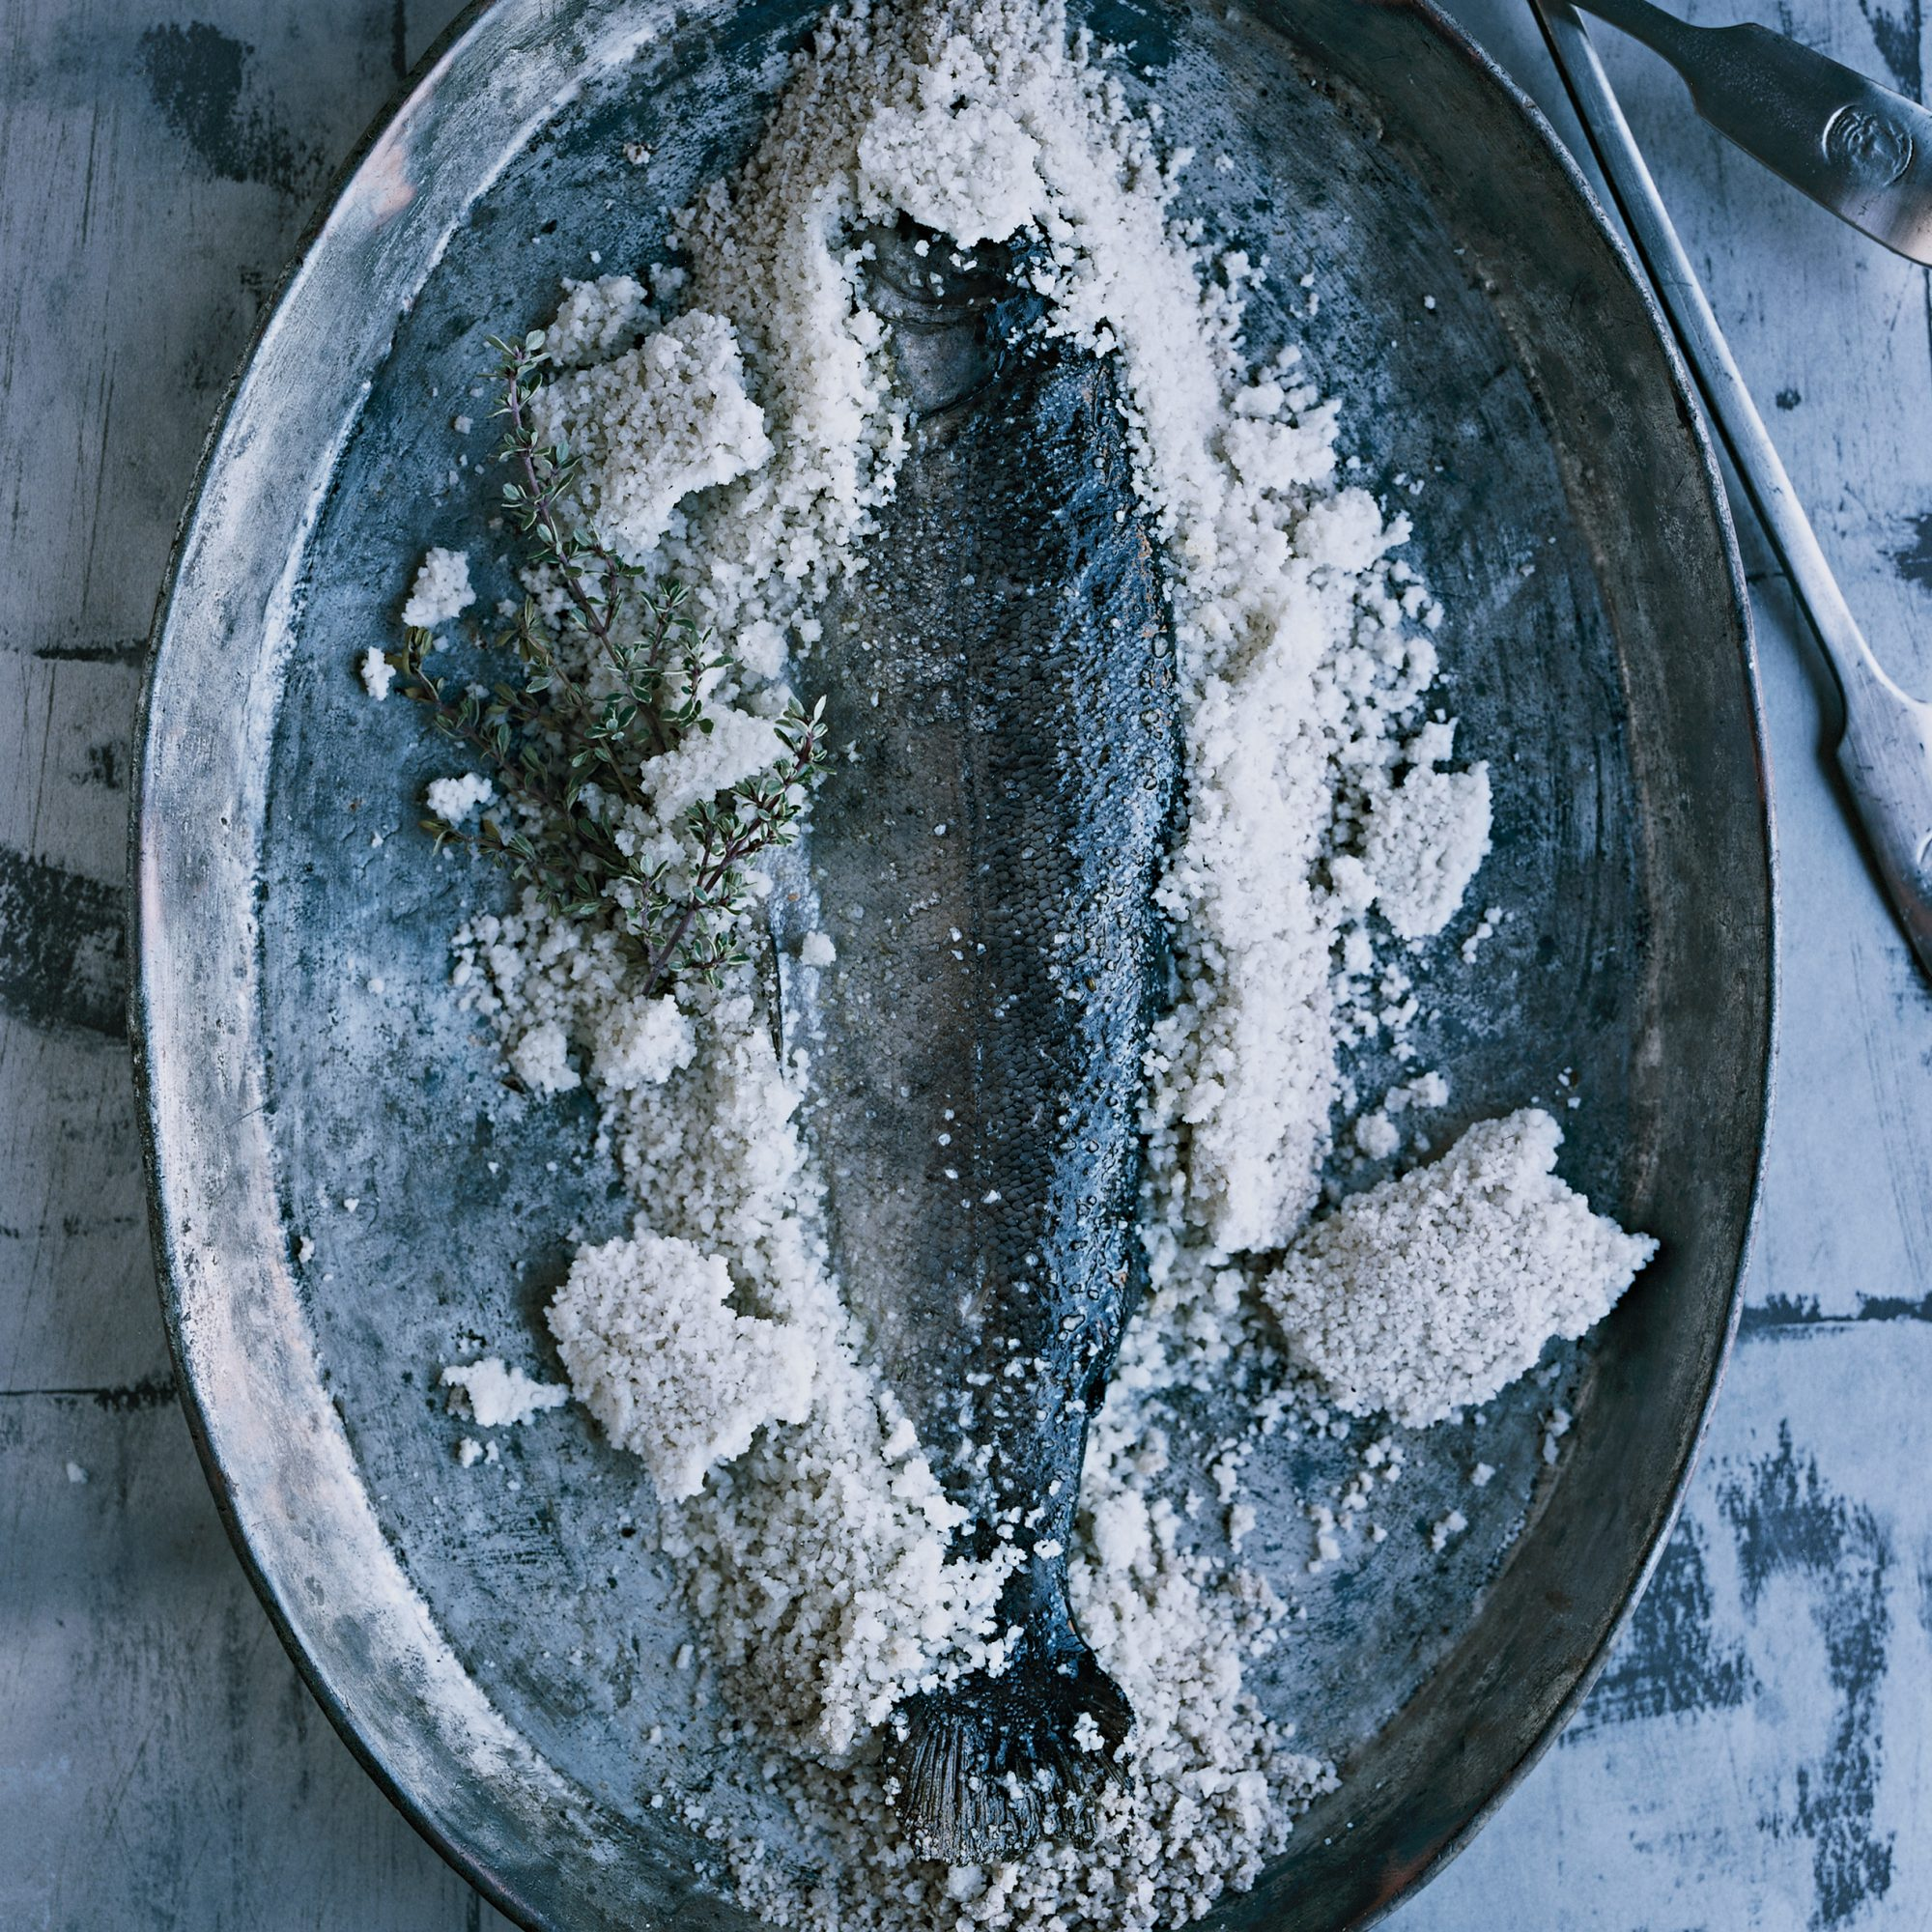 200903-r-salt-baked-trout.jpg